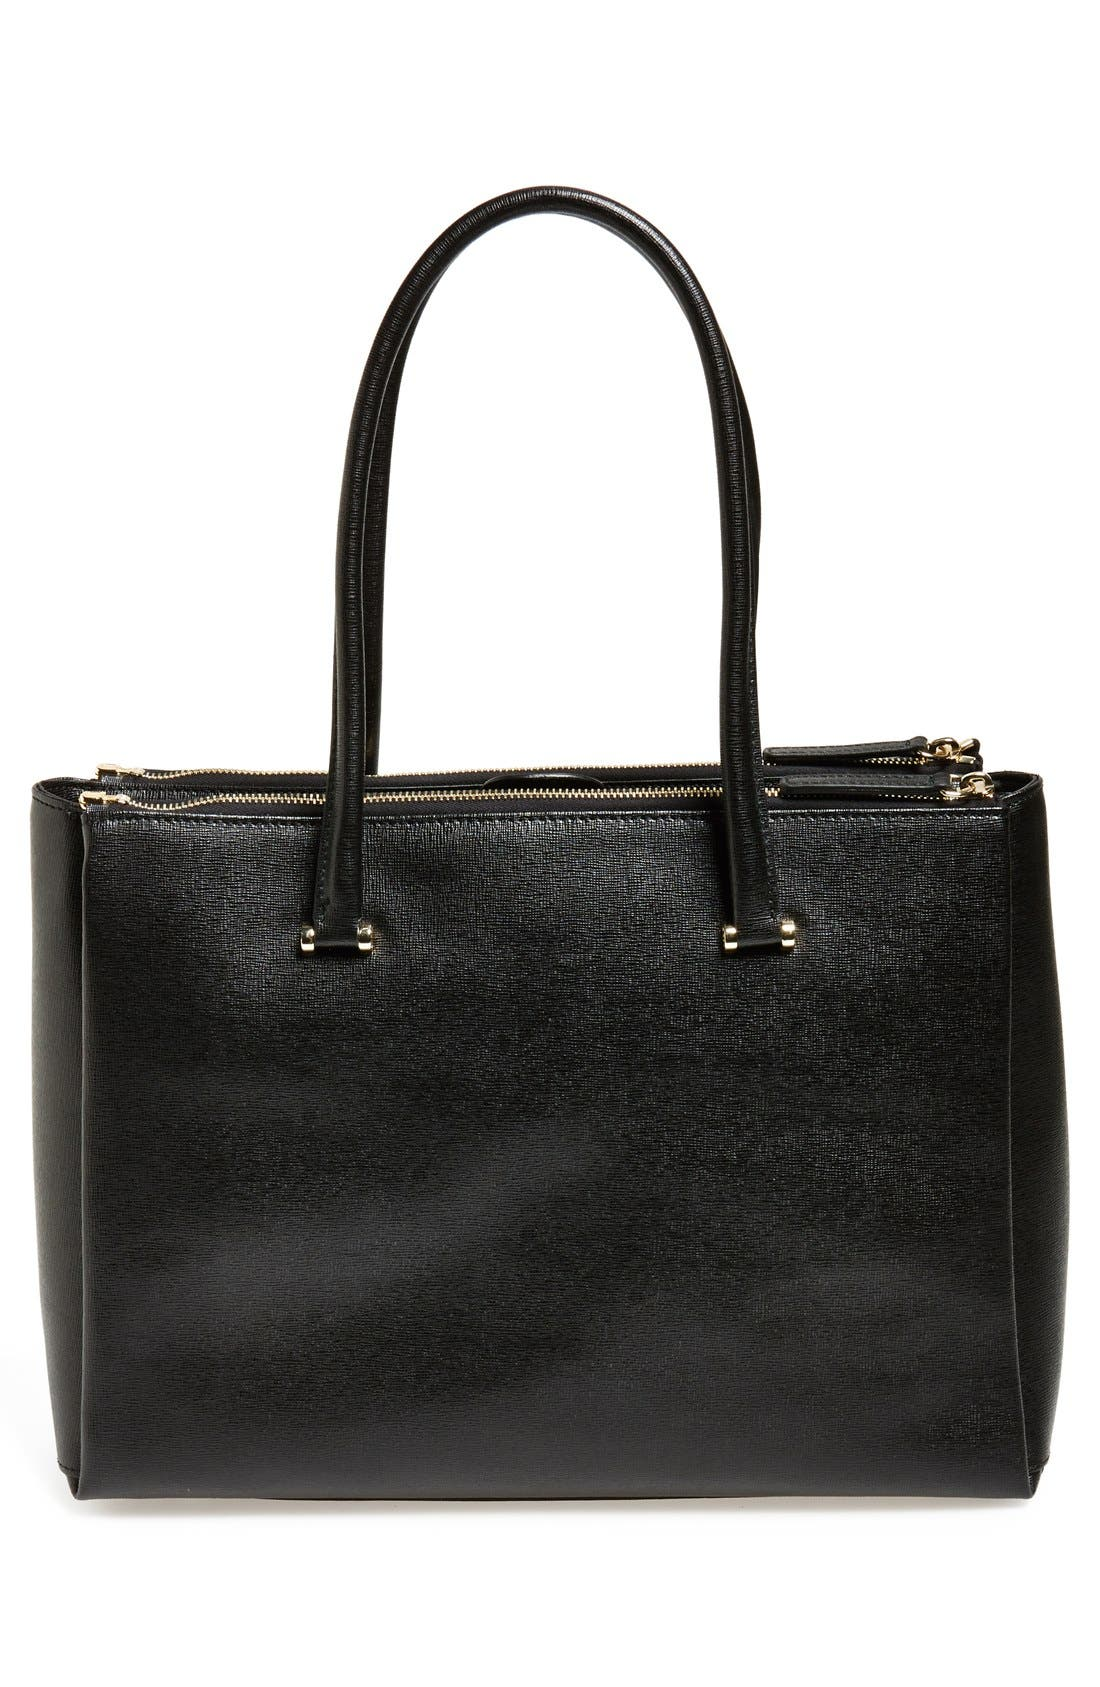 Alternate Image 3  - Furla 'Large Lotus' Saffiano Leather Tote